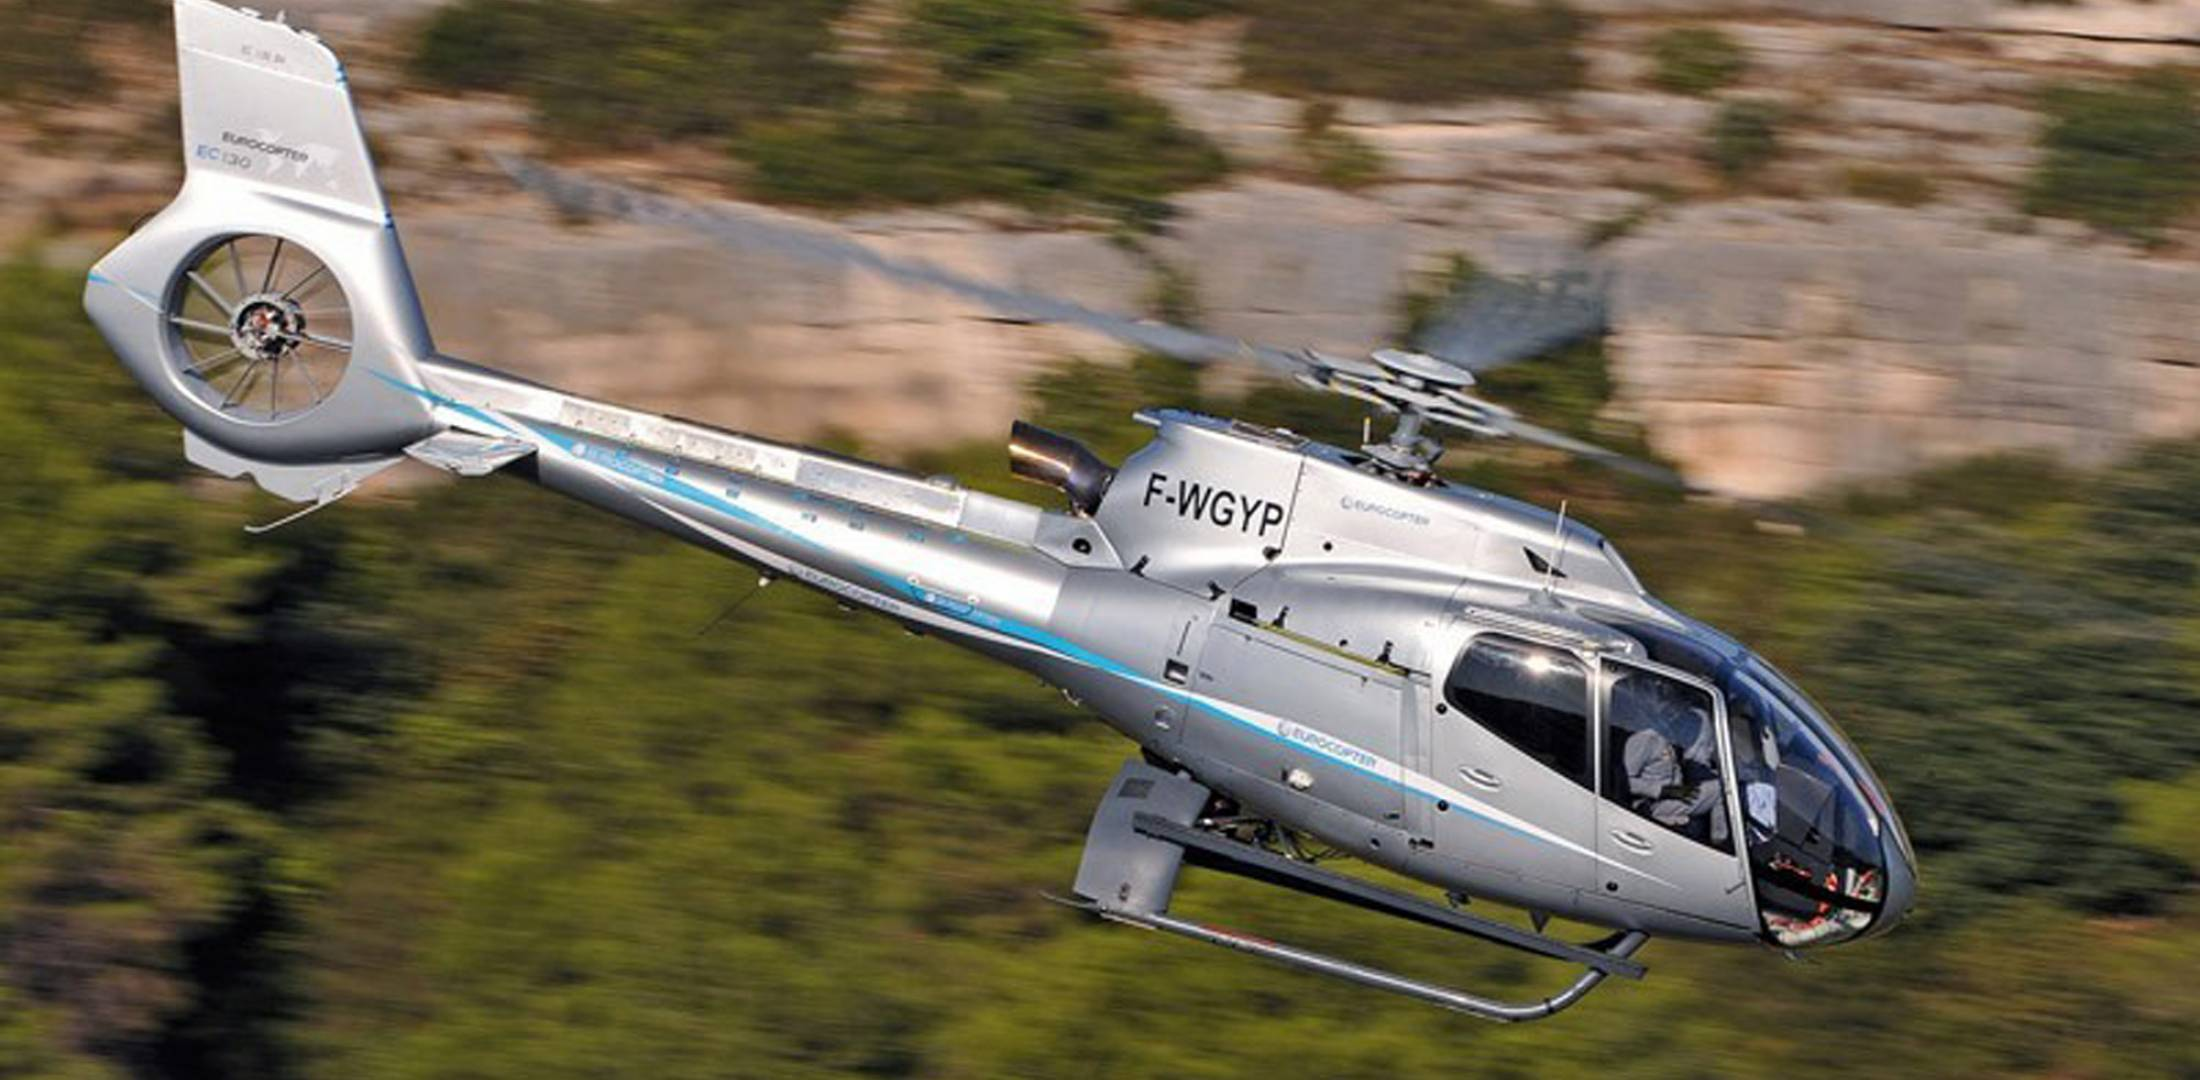 helicopter rides grand canyon south rim with Private Helicopter For Sale Malaysia on grandcanyonhelicoptertours co also Cheap Grand Canyon Glass Bridge Tour Tips 12338066 further grandcanyontour pany in addition Grand Canyon Wondrous Unforgettable furthermore Private Helicopter For Sale Malaysia.